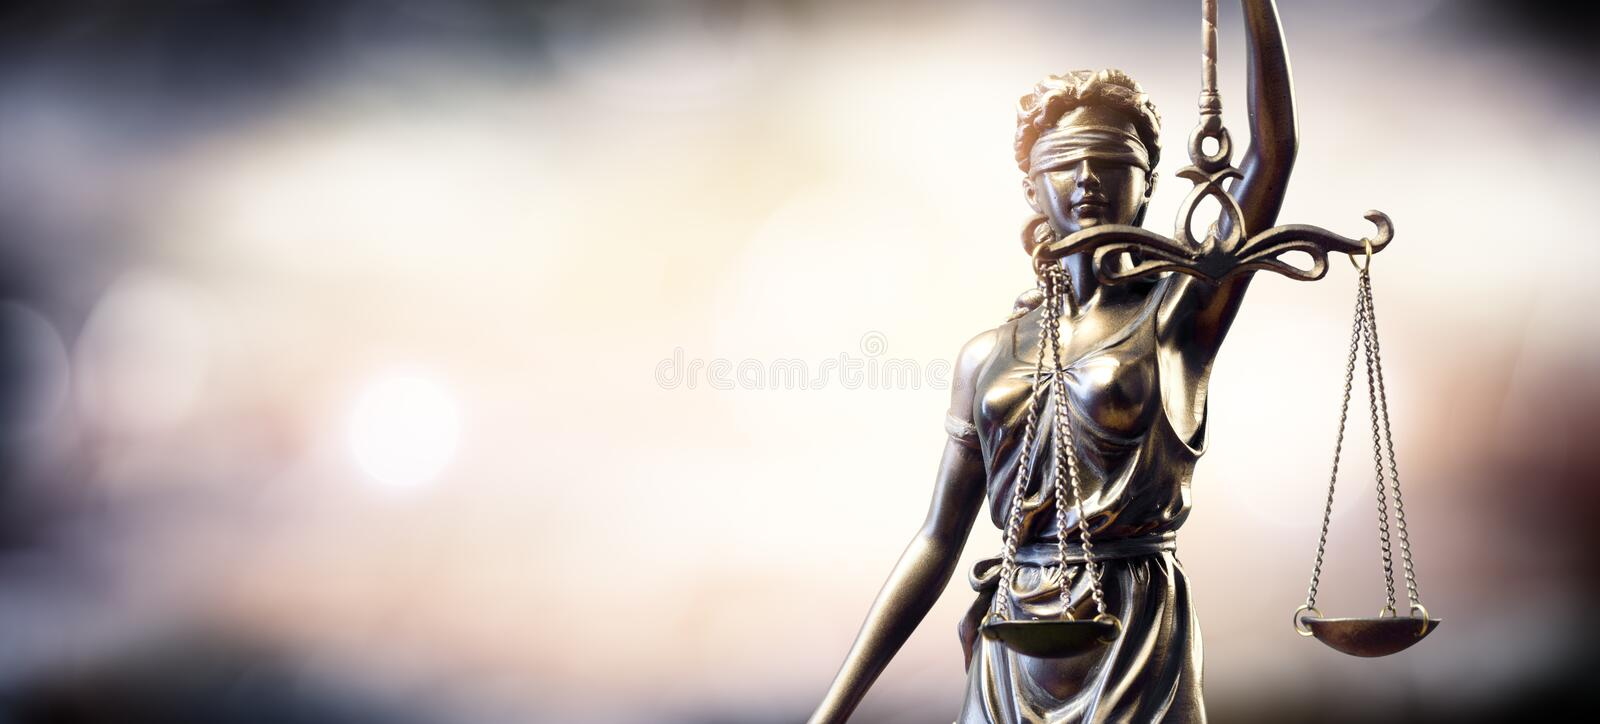 Download Statue Of Lady Justice stock image. Image of bronze, judge - 98737781